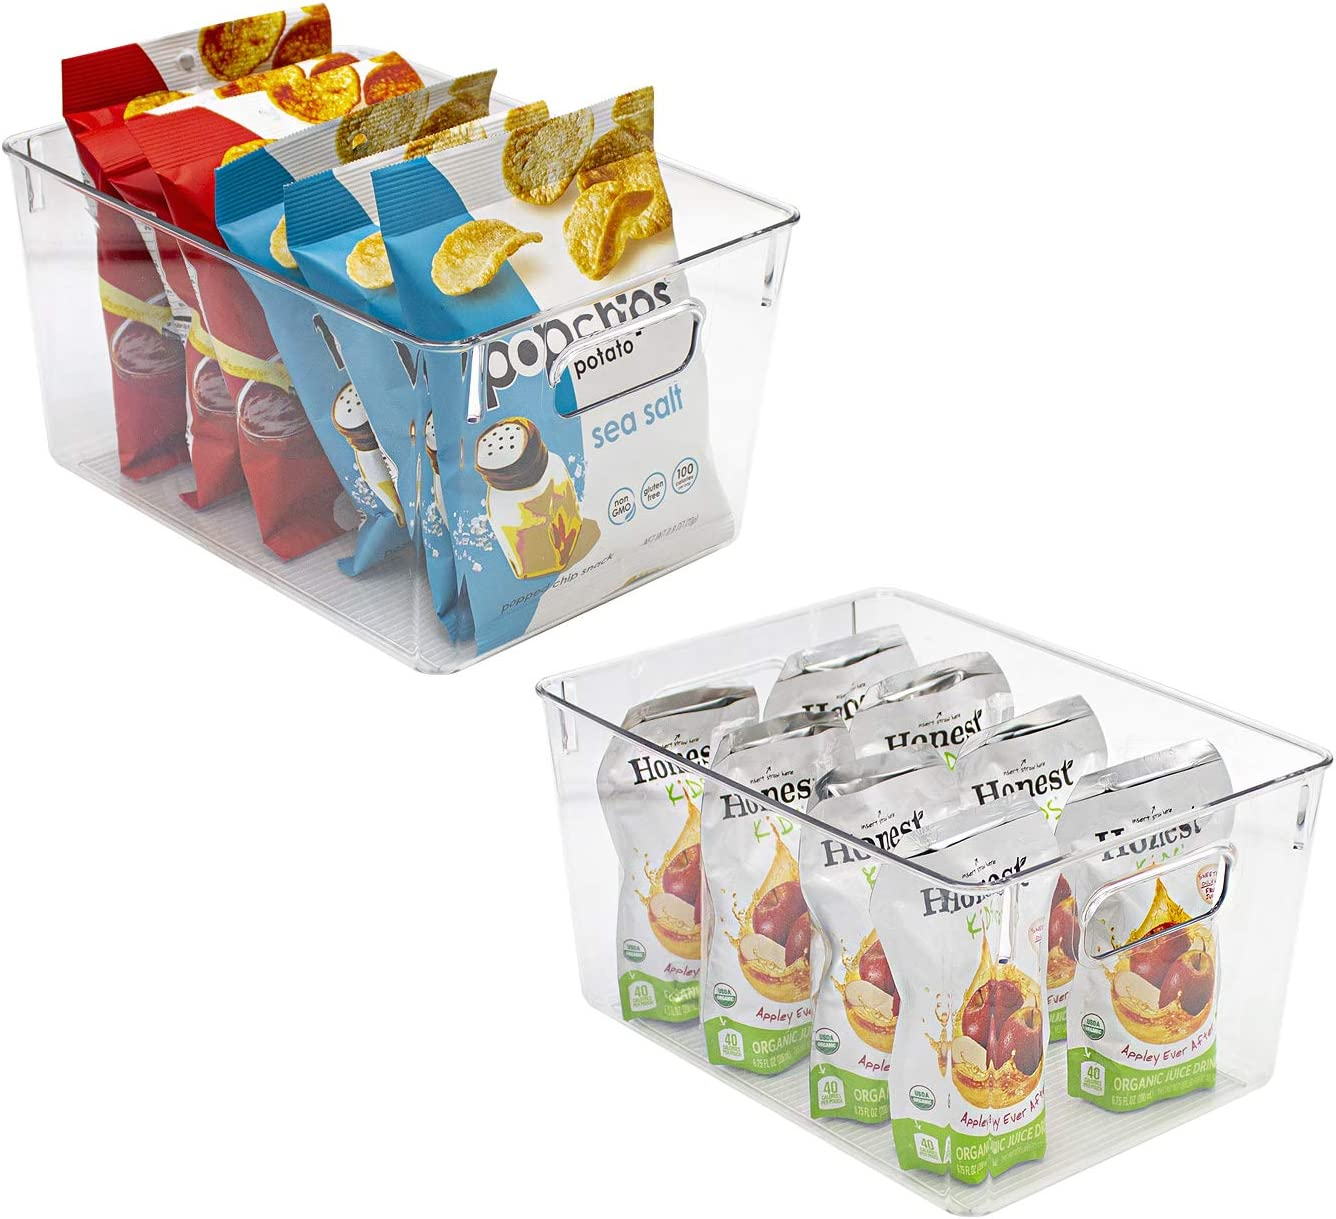 Sorbus Plastic Storage Bins Clear Pantry Organizer Box Bin Containers for Organizing Kitchen Fridge, Food, Snack Pantry Cabinet, Fruit, Vegetables, Bathroom Supplies (2-Pack)